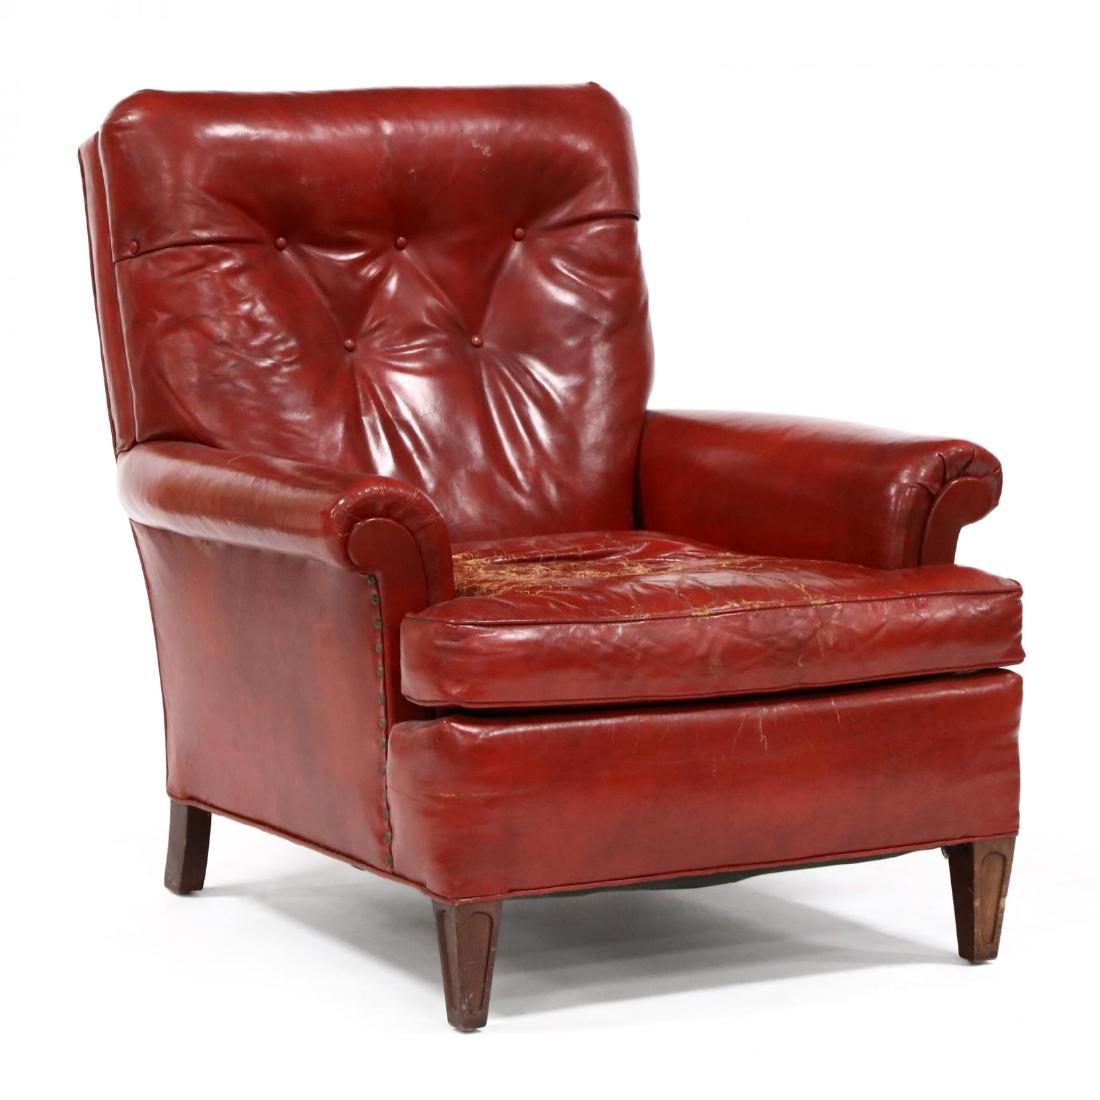 Young Furniture, Vintage Leather Lounge Chair